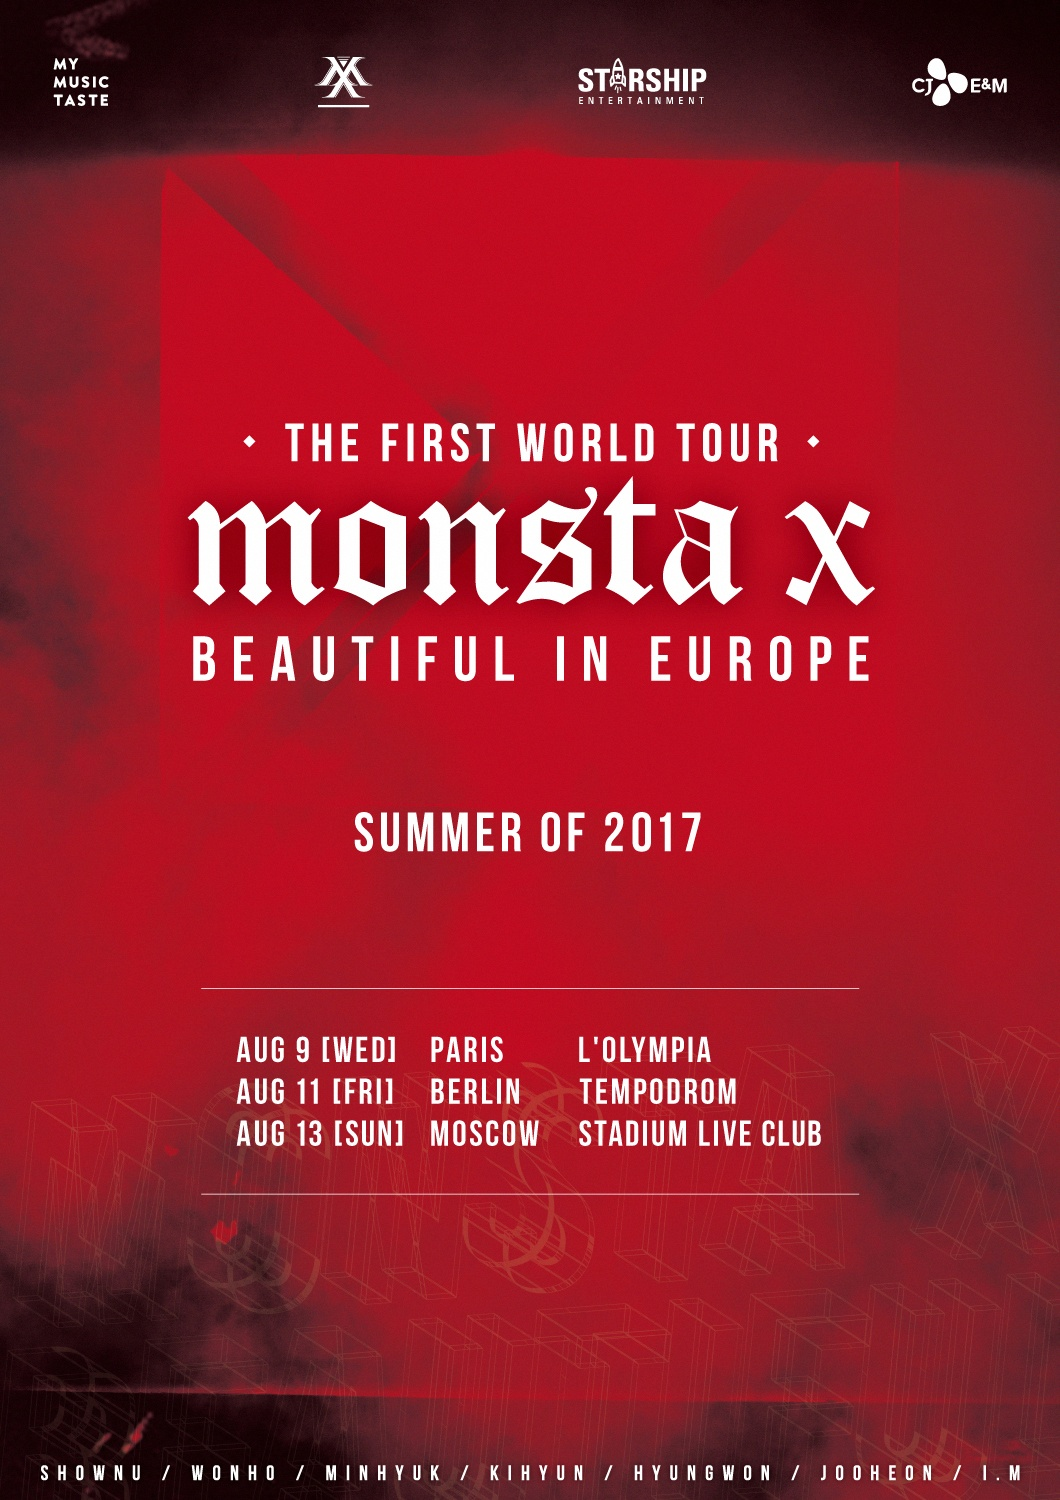 Monsta X Is Heading To Europe As A Part Of Their First World Tour